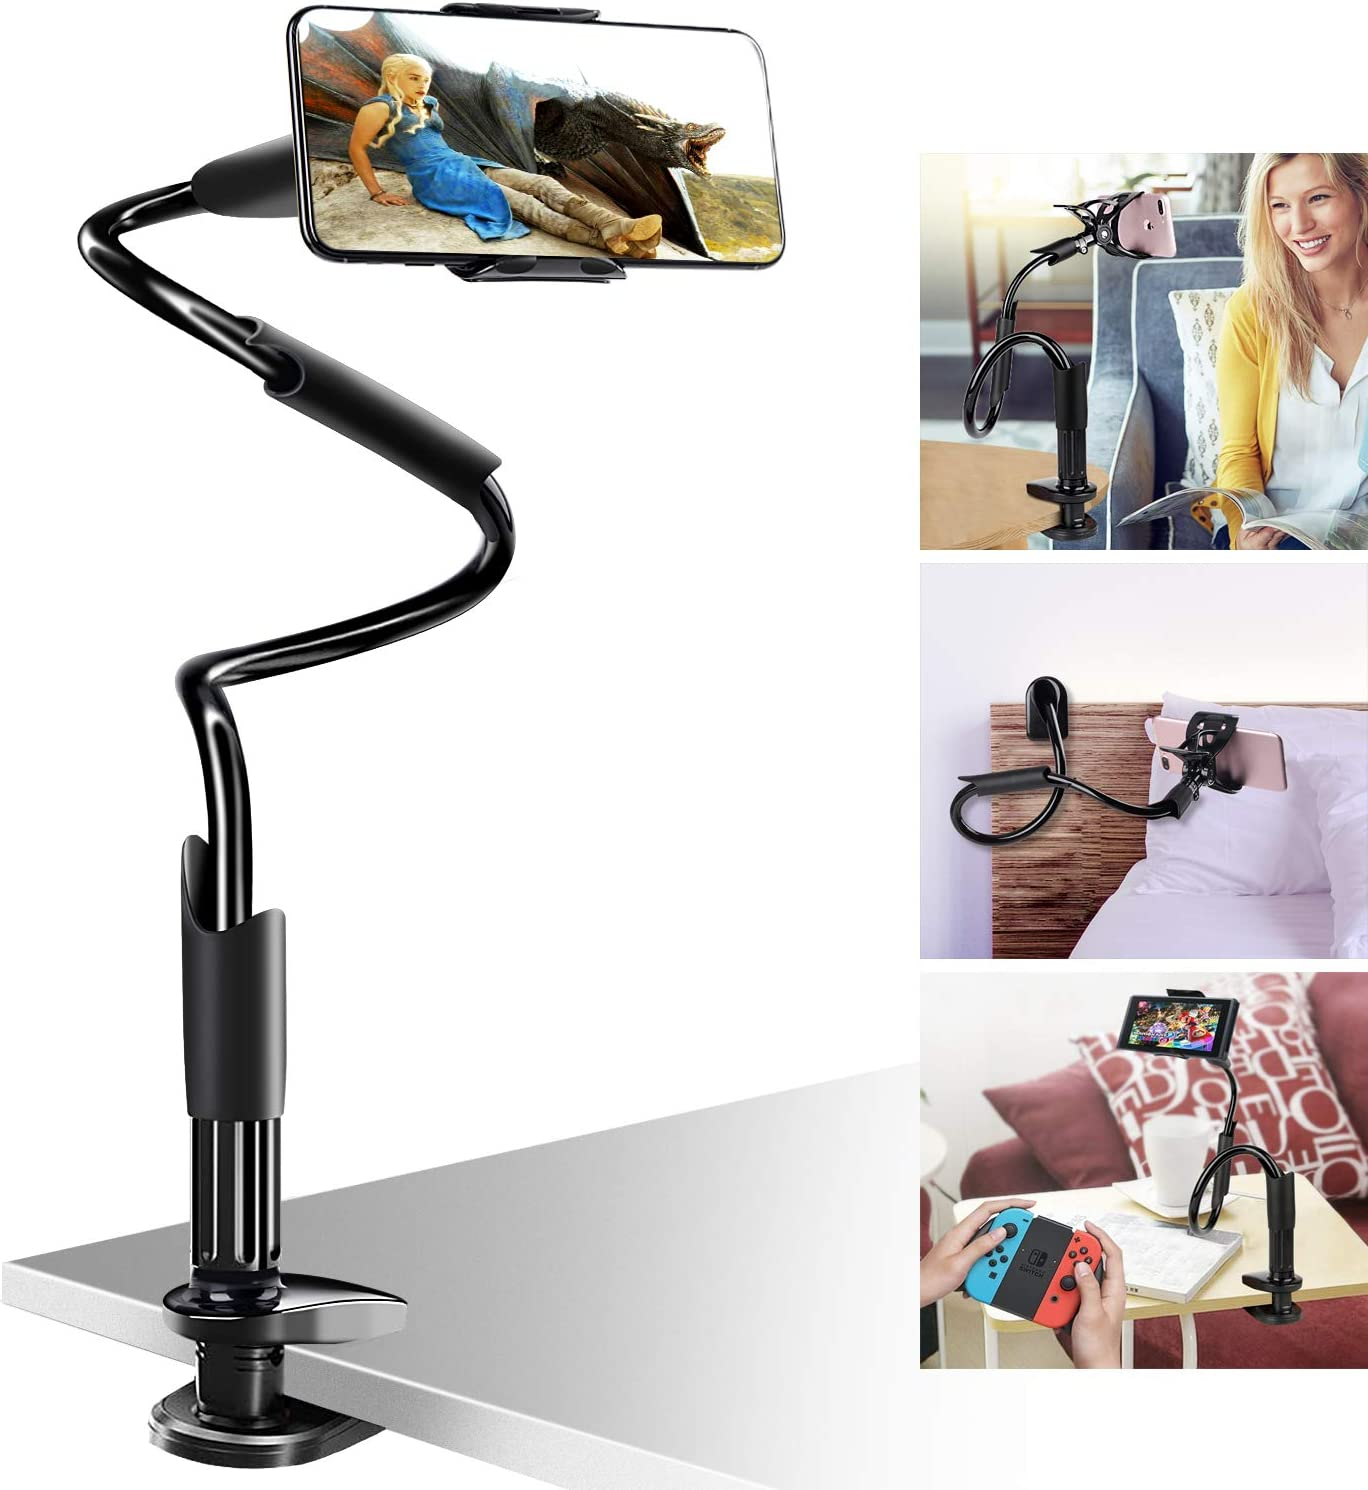 Bed Phone Holder Gooseneck Mount, B-Land Clip Cell Phone Holder for Desk Flexible Arm Clamp Mount Stand for Phone 11 Pro XS Max XR X 8 7 6 Plus Samsung S10 S9 S8 Nintendo Switch (Black)